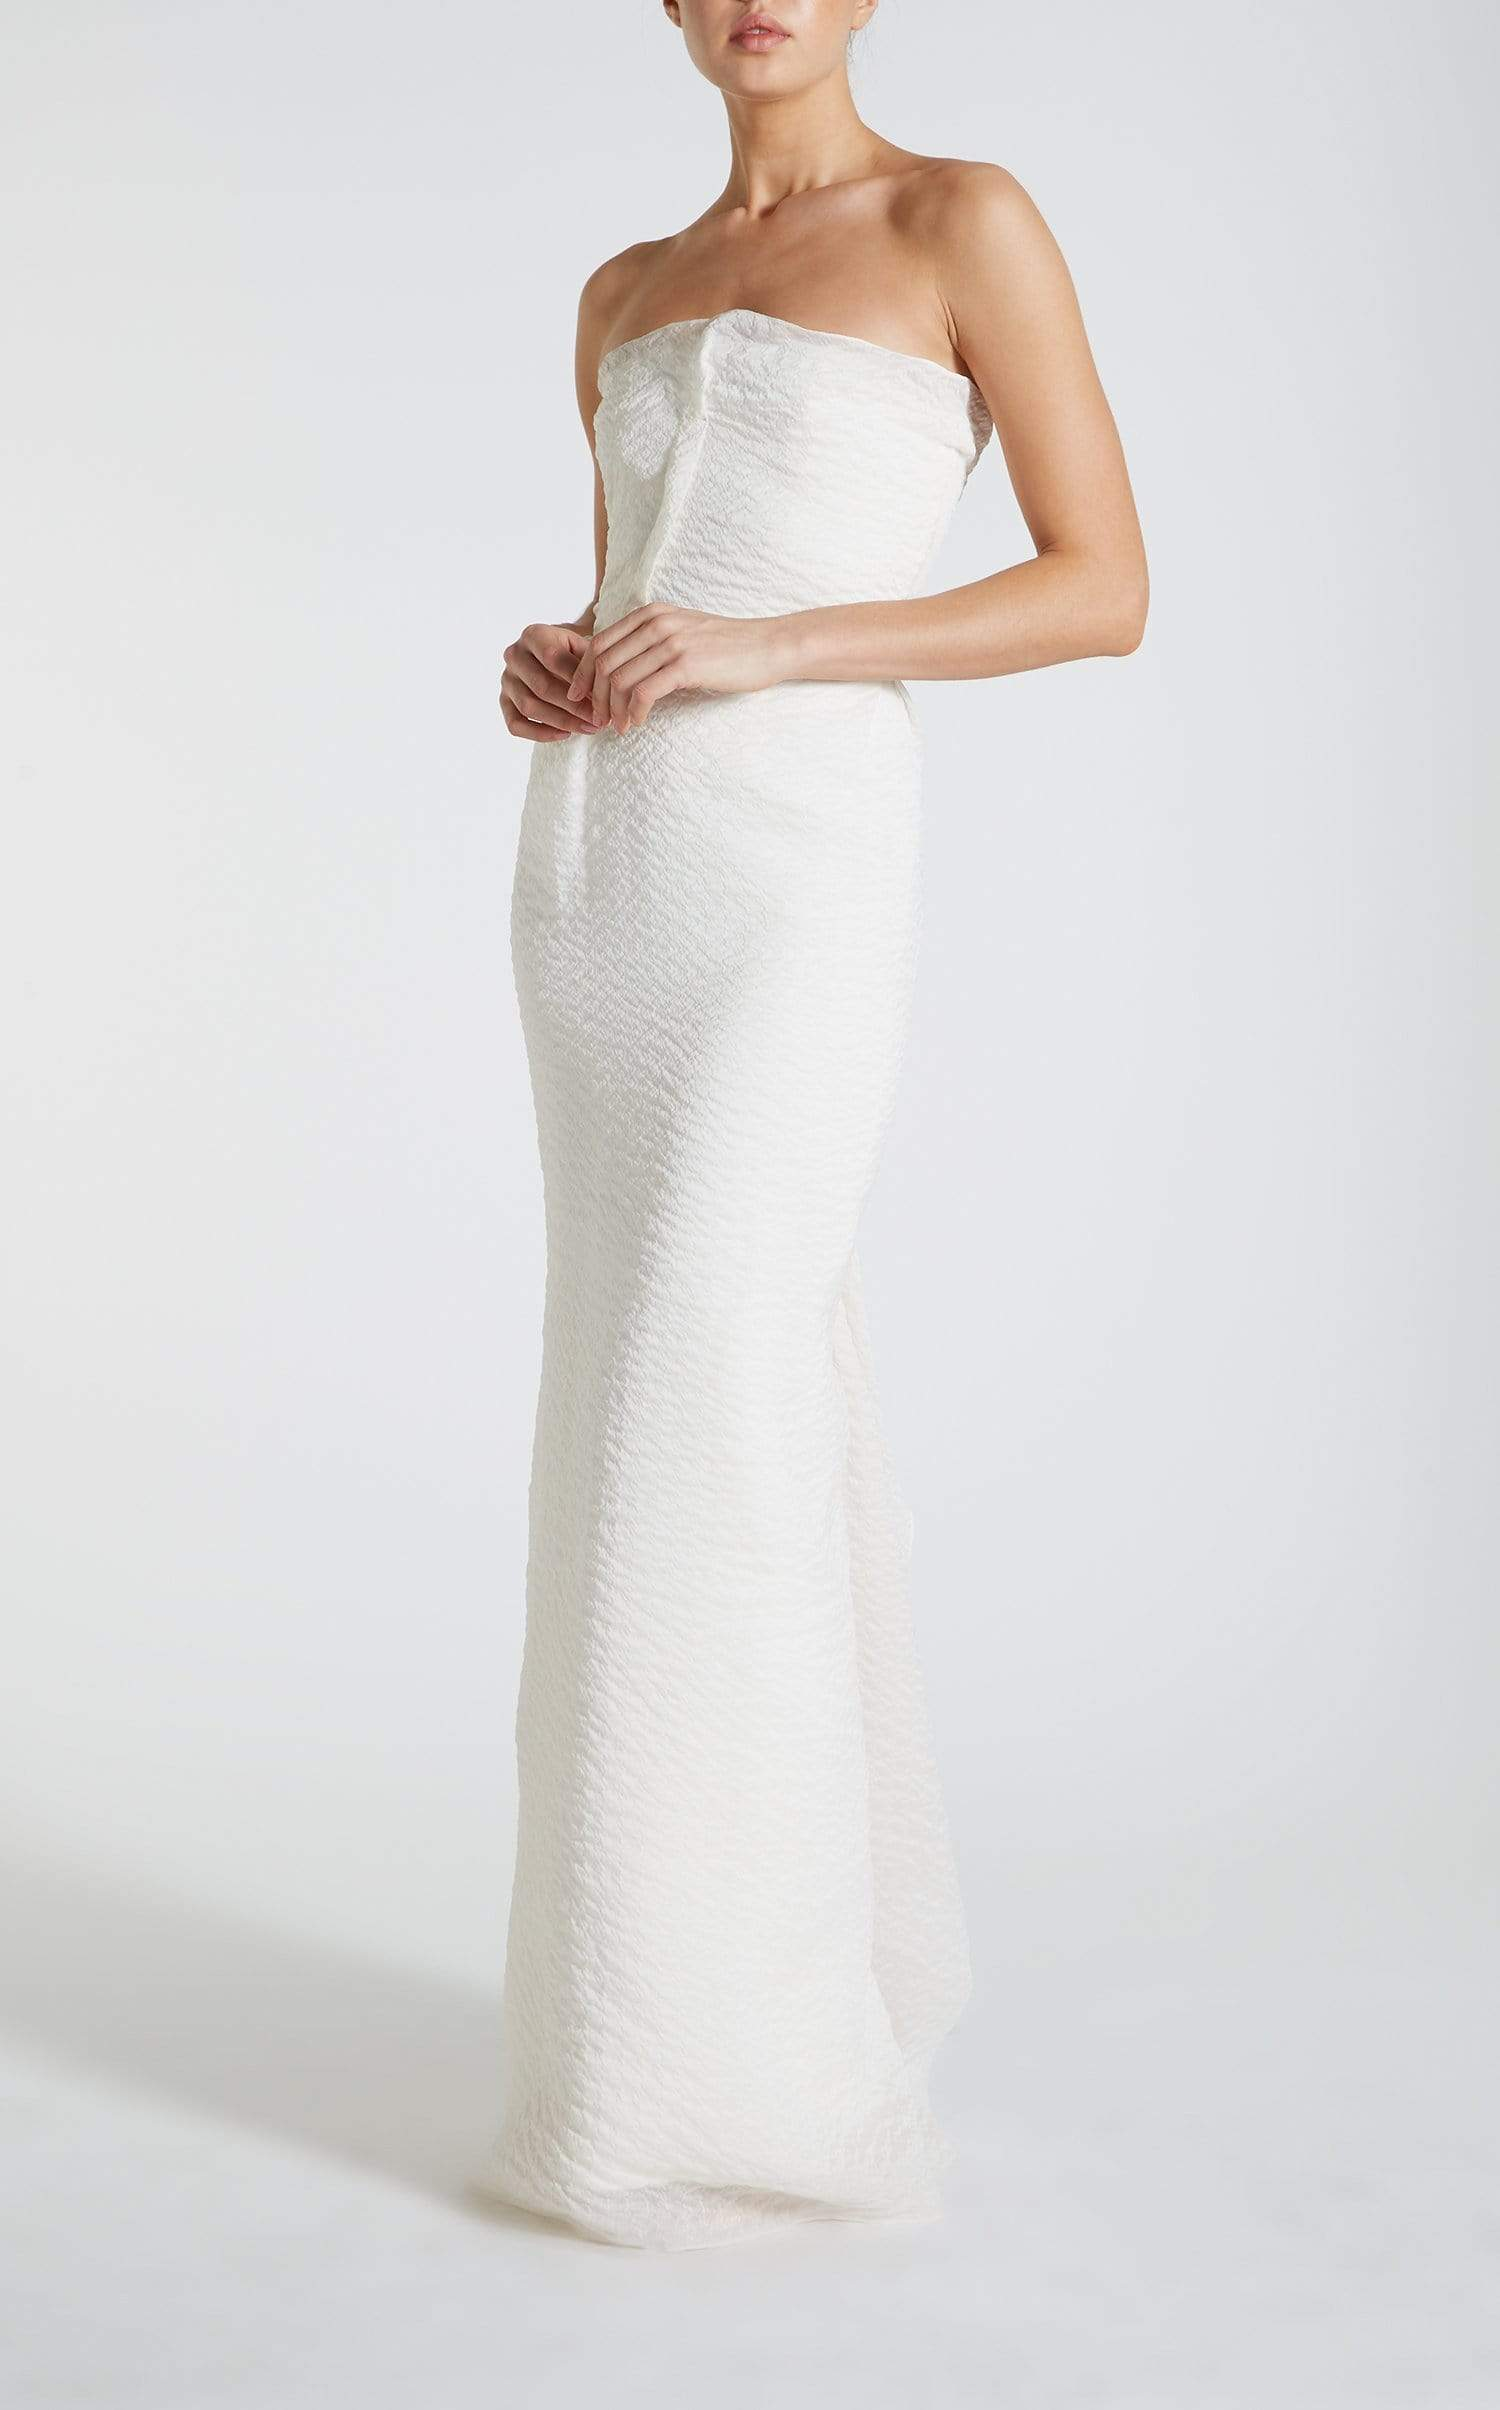 Henderson Gown In White from Roland Mouret